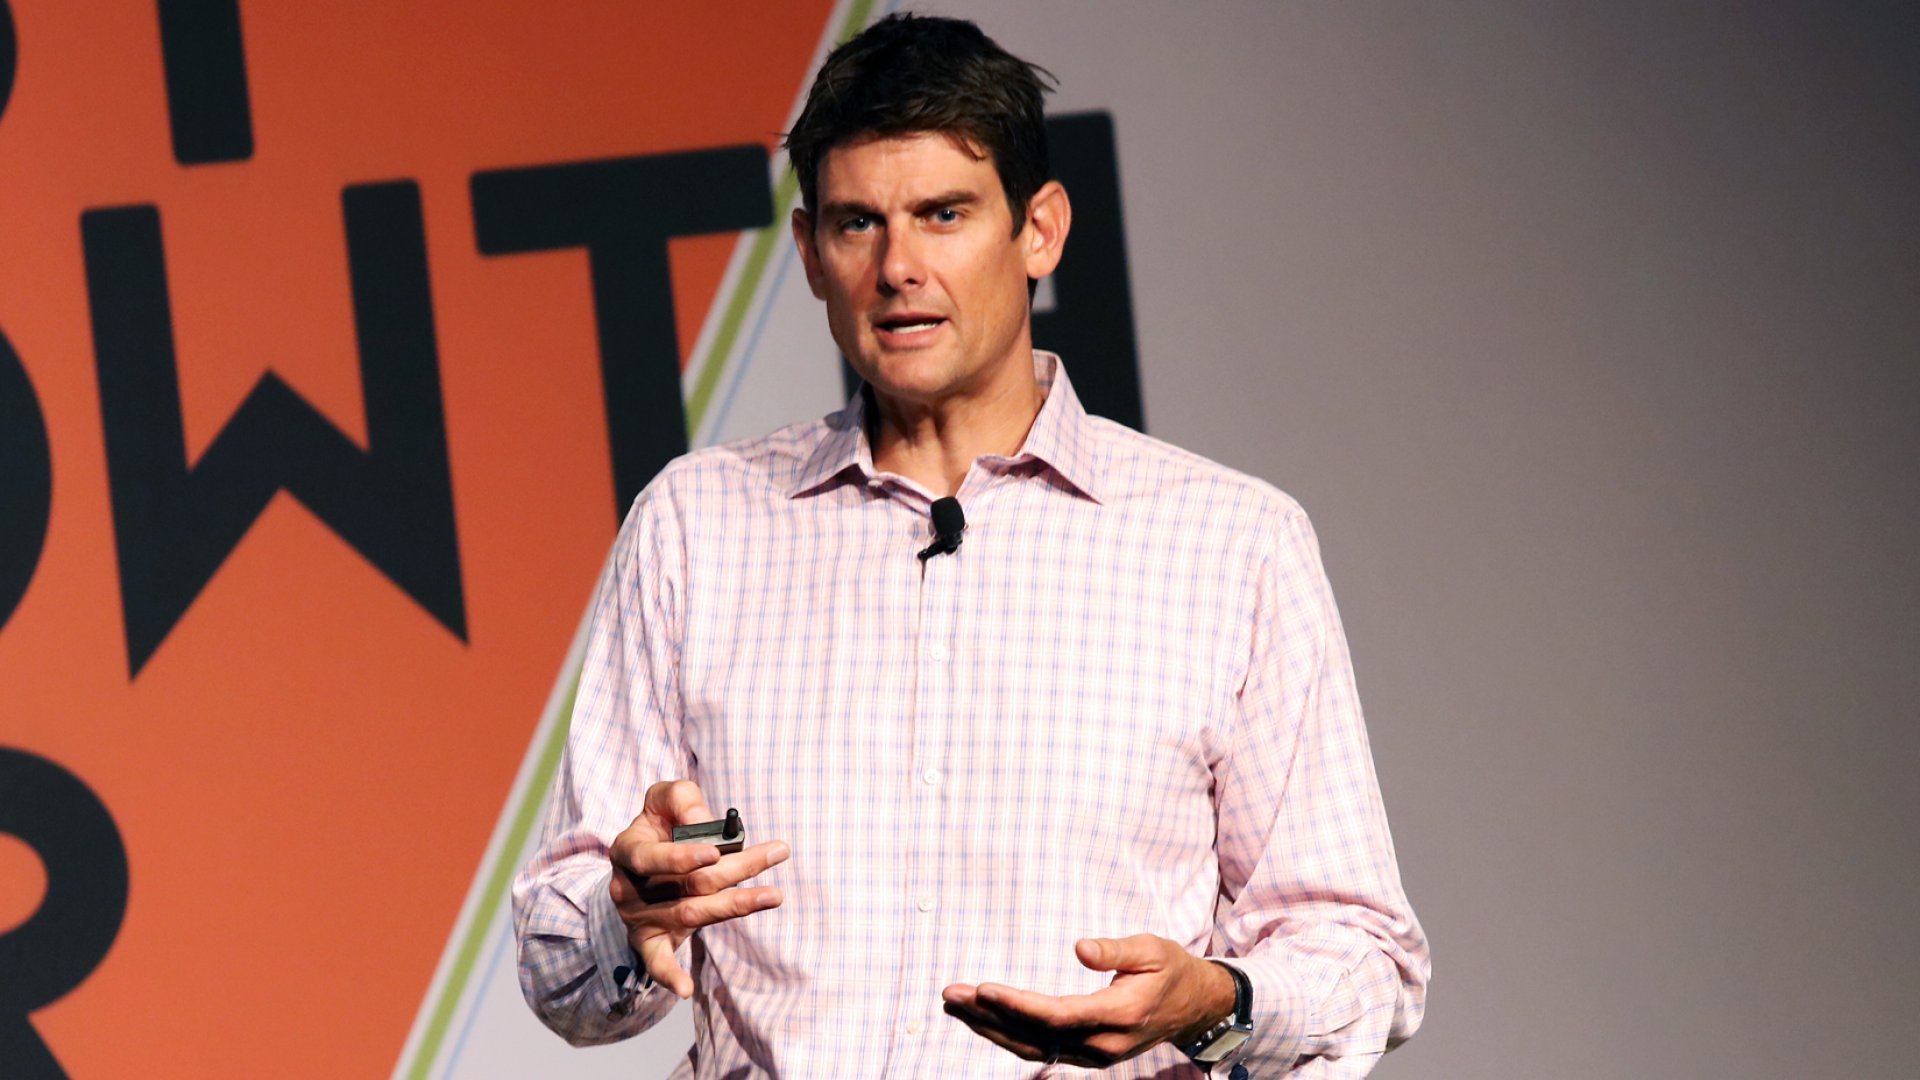 Adam Lowry, co-founder of Method and Ripple Foods.